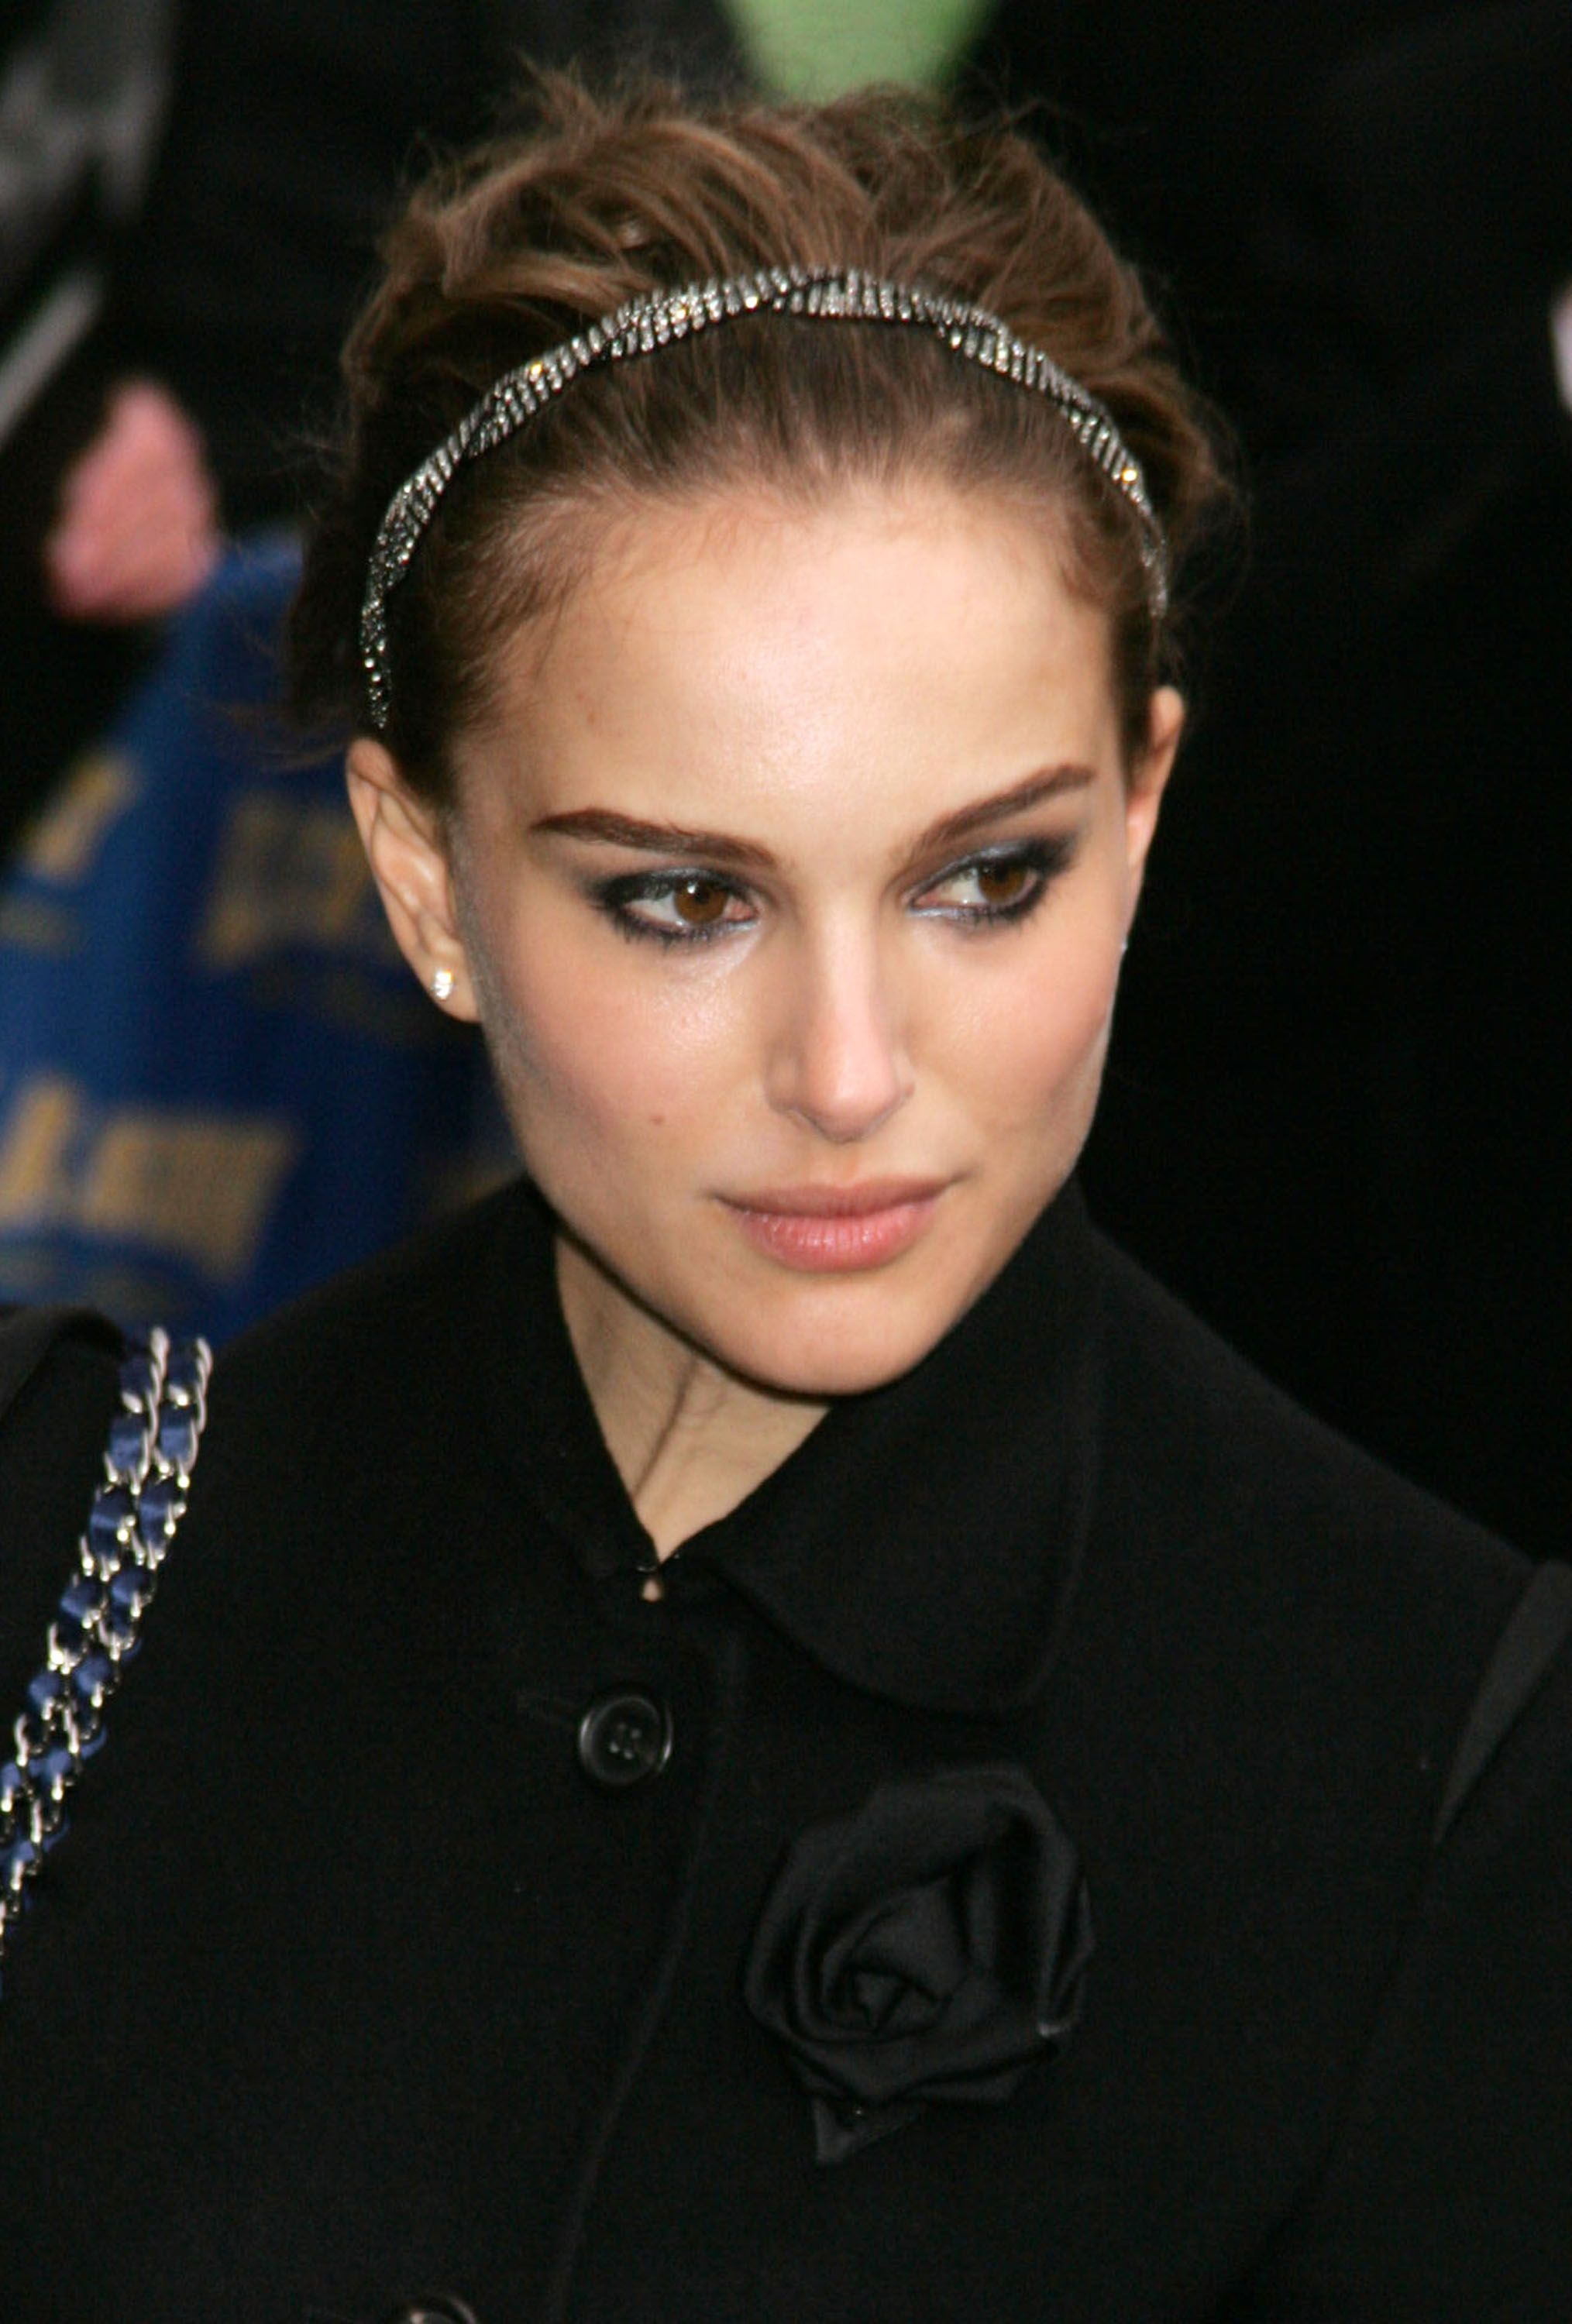 Natalie Portman On Letterman - February 2008